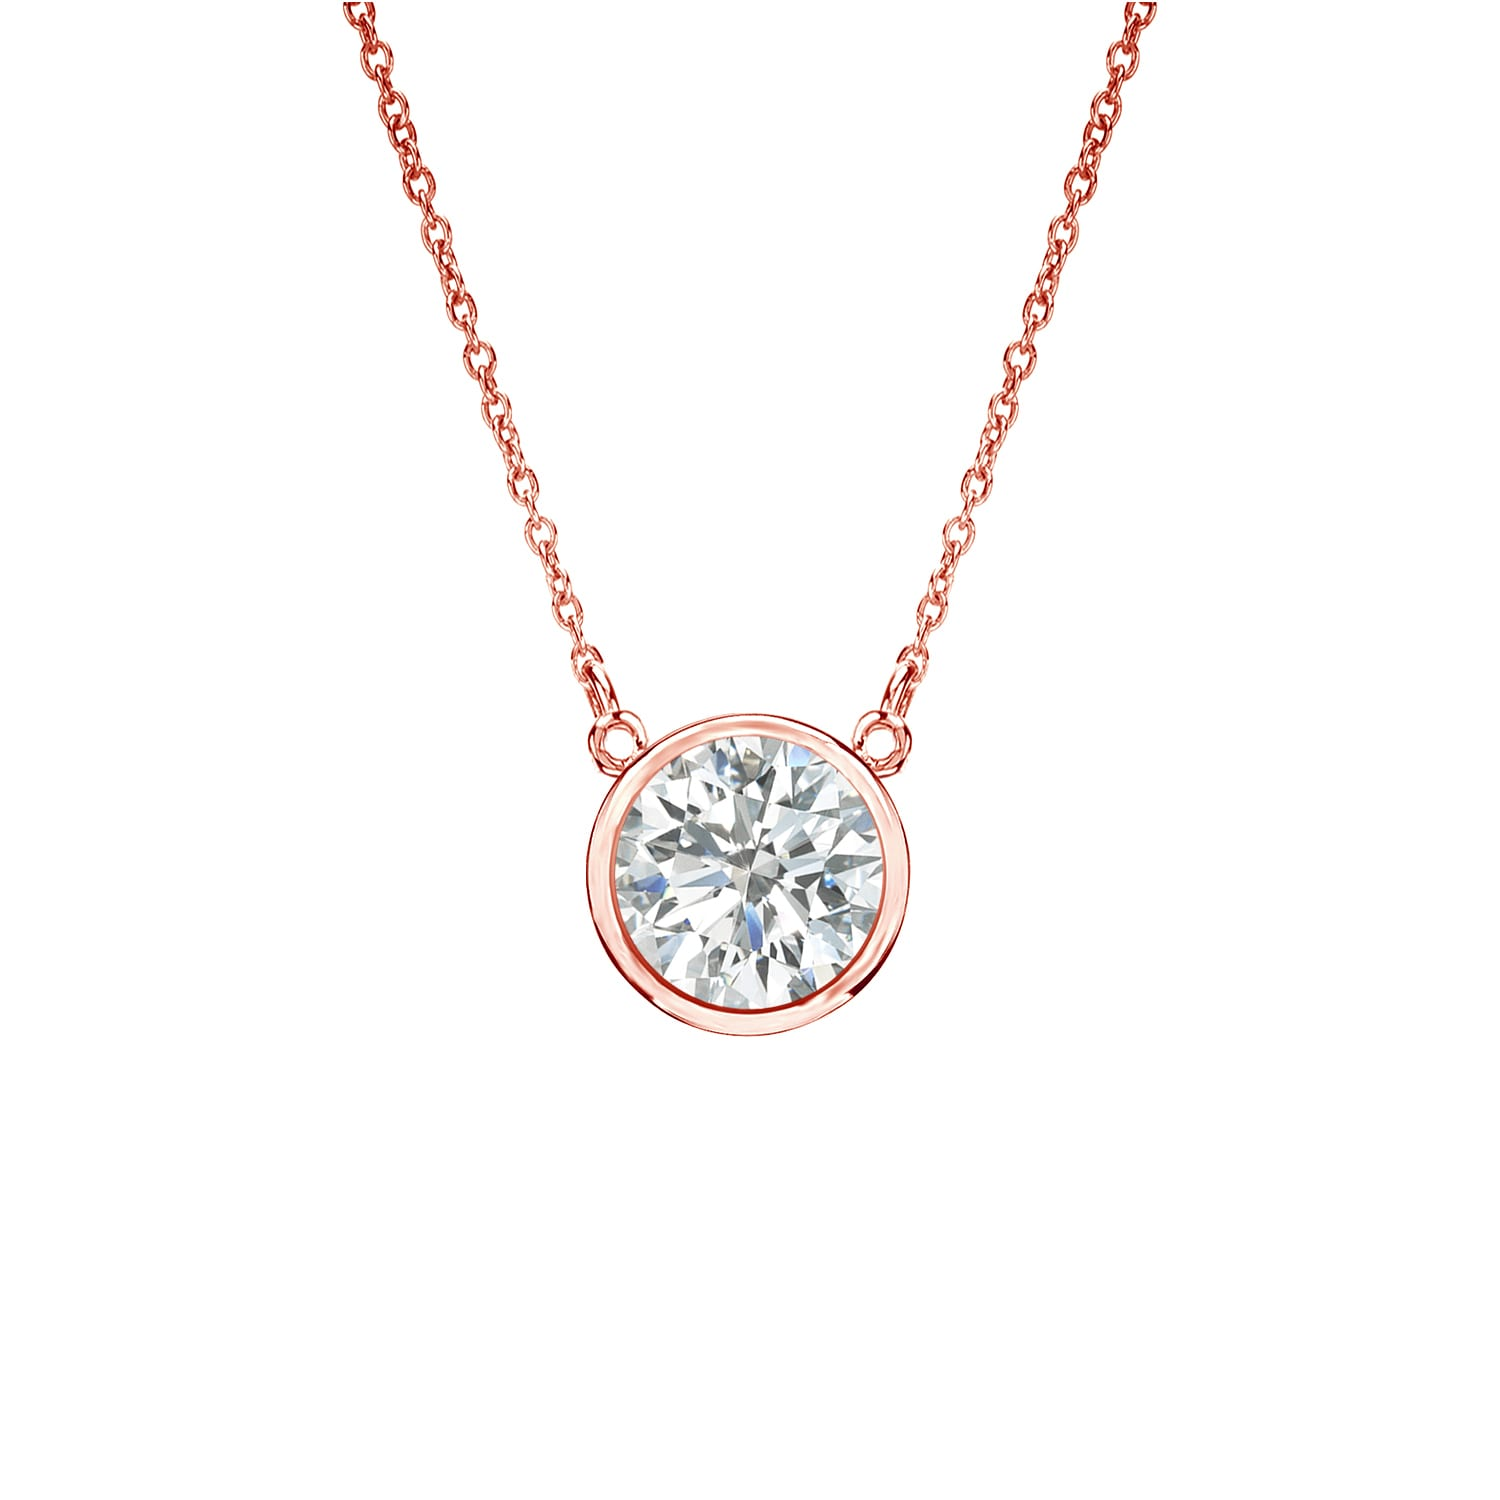 solitaire pendant degem forevermark pave diamond encordia necklace